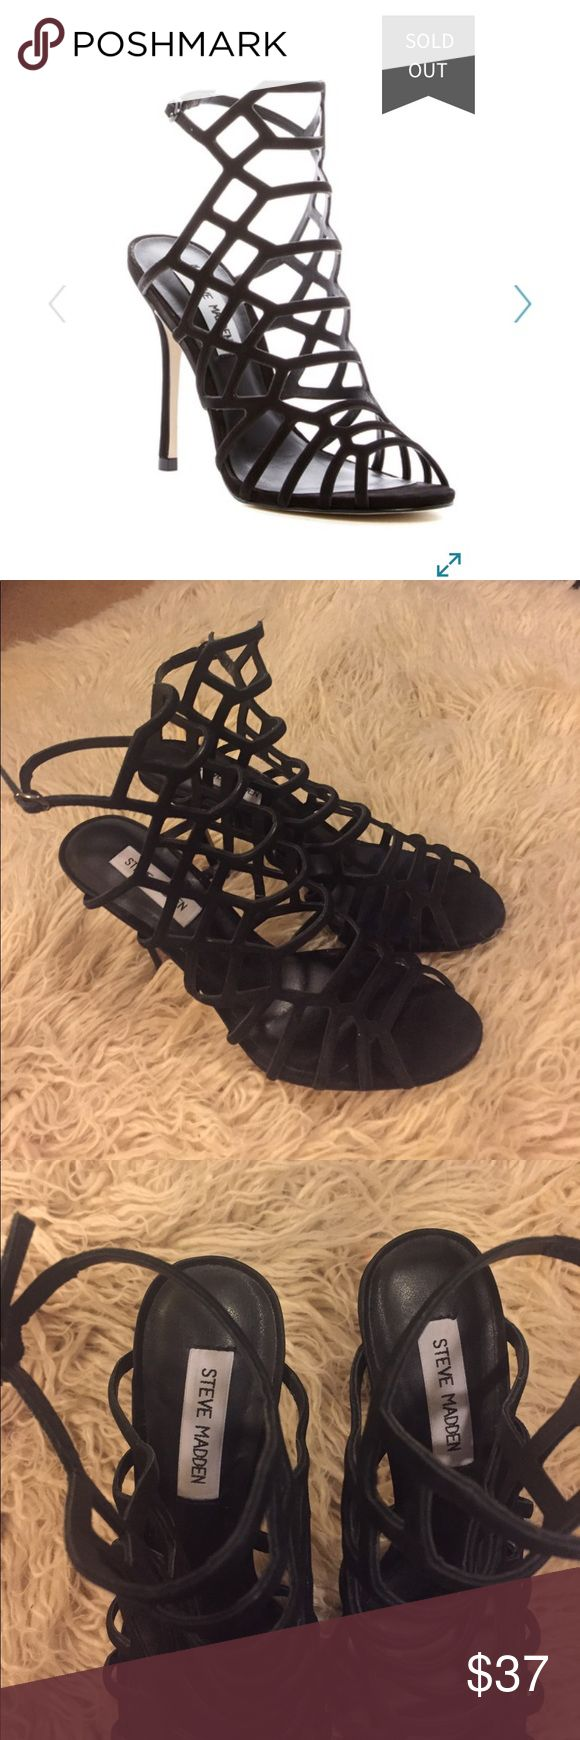 Black Steve Madden Heels Black Steve Madden heels, only worn a couple of times, open to offers, sold out on my many websites and stores Steve Madden Shoes Heels